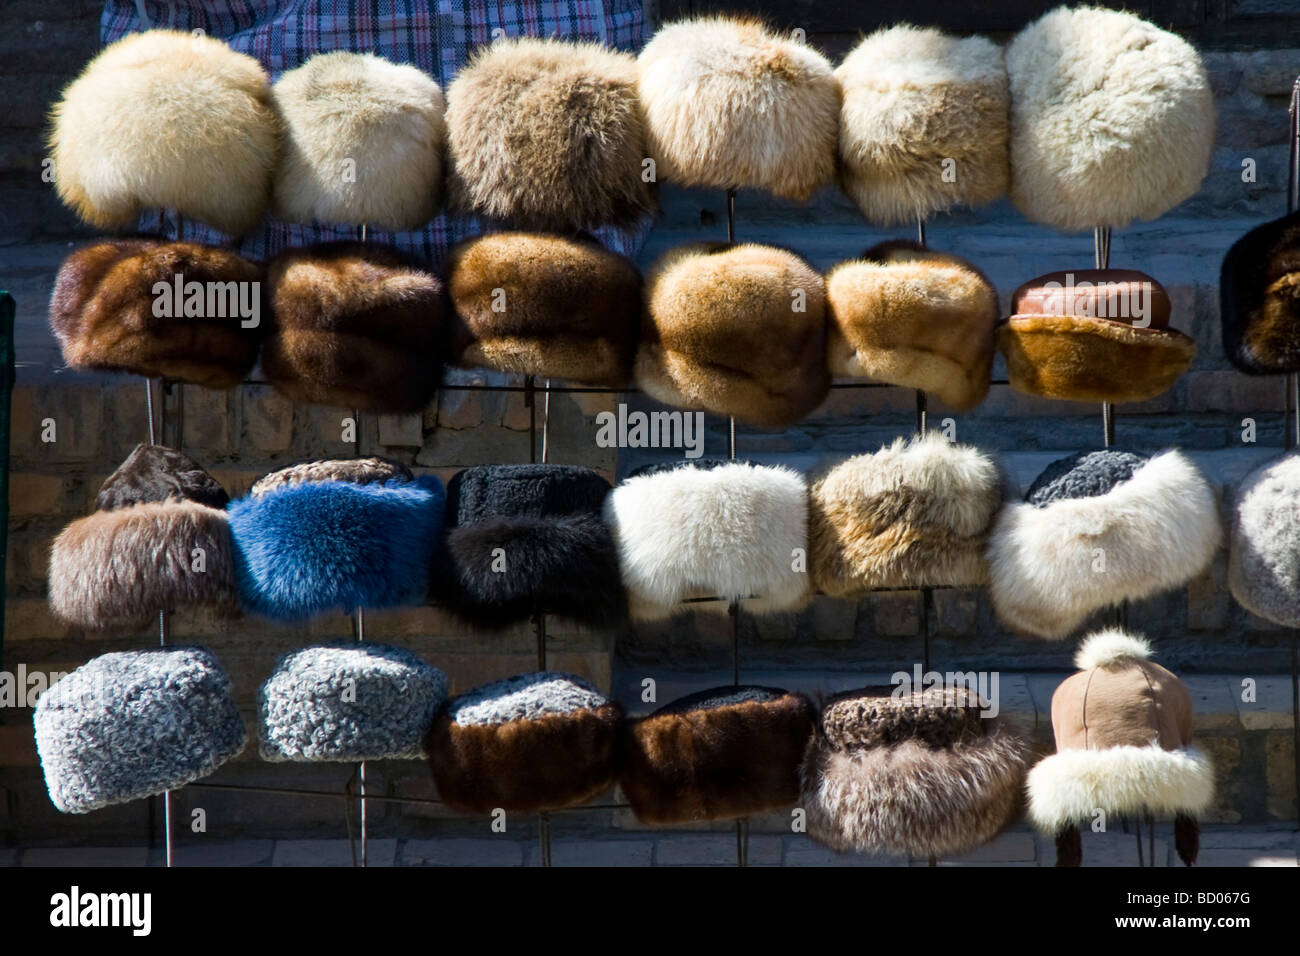 Fur Hats in Bukhara Uzbekistan Stock Photo  25205812 - Alamy 64a3b922066e